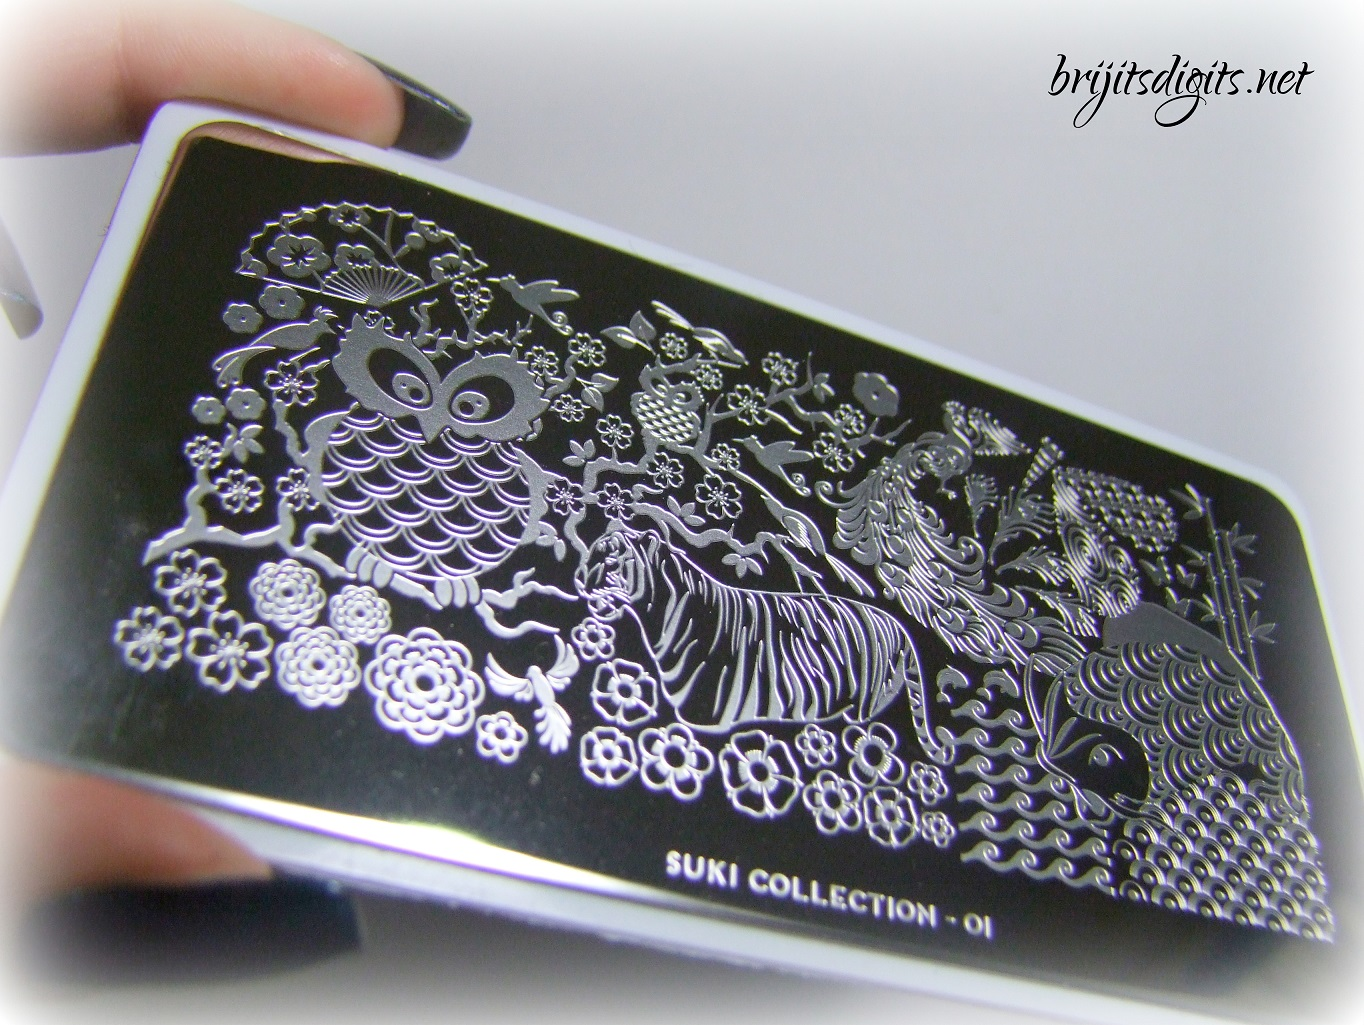 Moyou London Suki Collection 01 Nail Art Stamping Plate Brijits